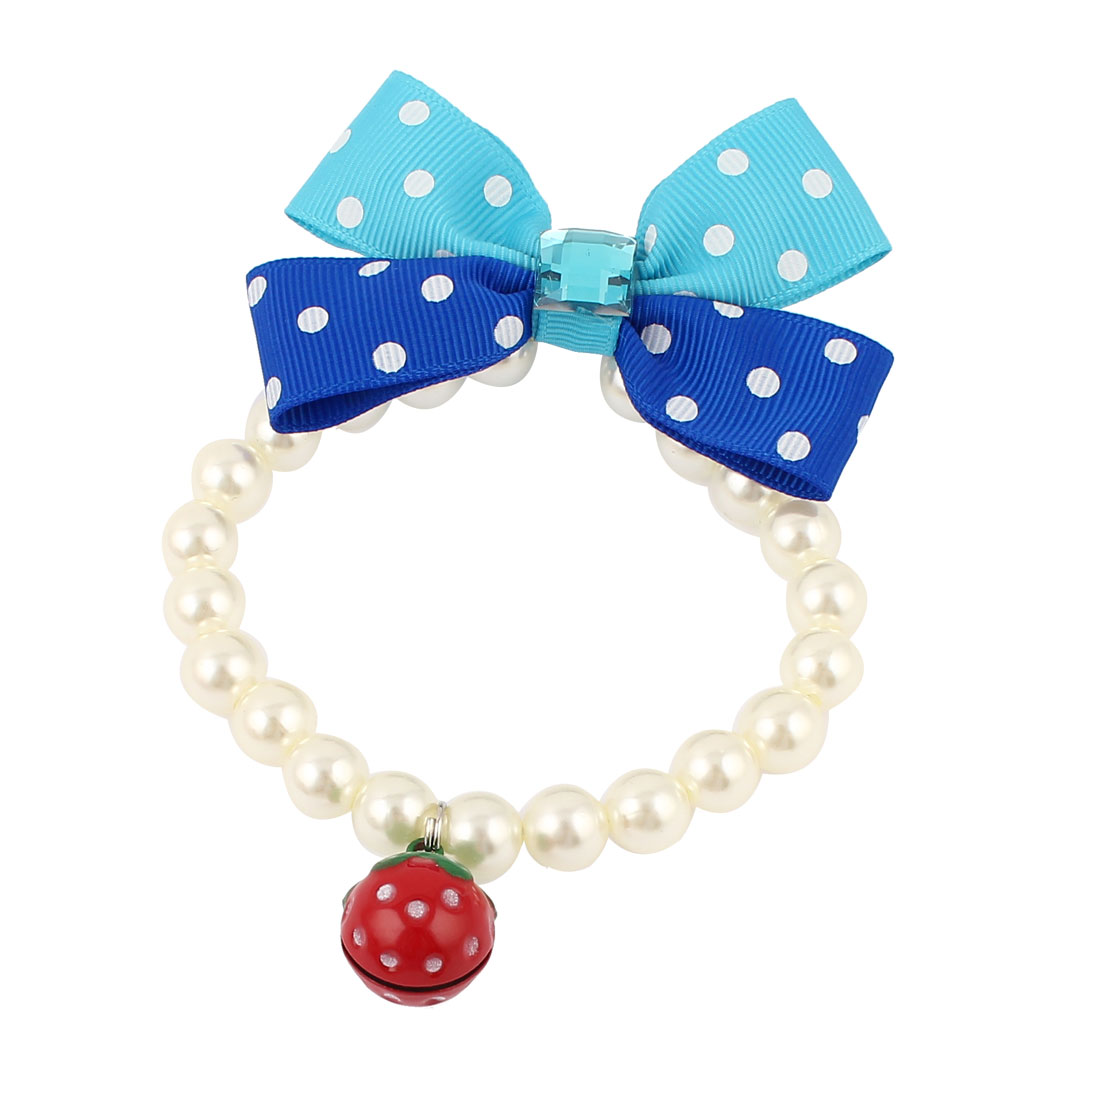 Metal Bell Pendant Bowknot Accent Pet Dog Plastic Beads Imitation Pearls Collar Necklace White XS